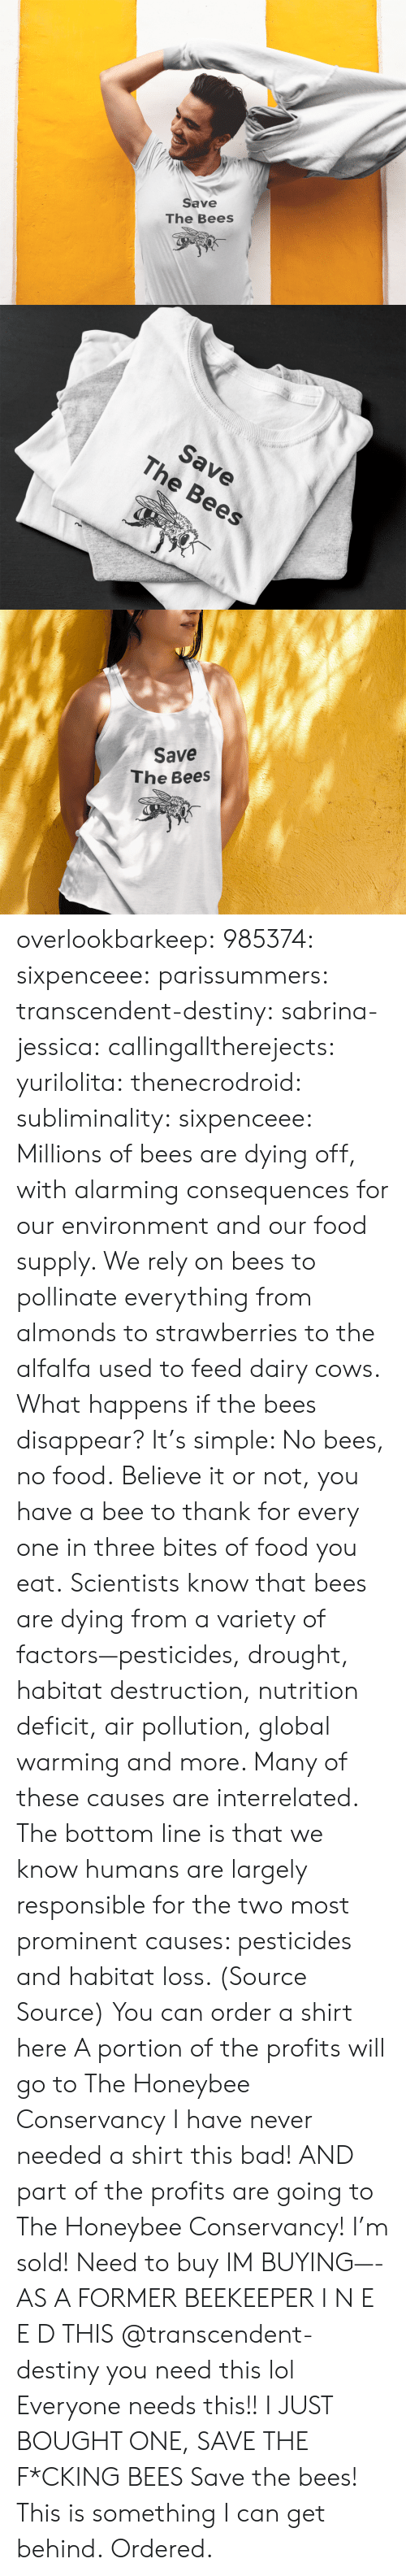 Factors: Save  The Bees   Save  The Bees   Save  The Bees overlookbarkeep: 985374:  sixpenceee:  parissummers:  transcendent-destiny:  sabrina-jessica:   callingalltherejects:  yurilolita:  thenecrodroid:  subliminality:   sixpenceee:   Millions of bees are dying off, with alarming consequences for our environment and our food supply. We rely on bees to pollinate everything from almonds to strawberries to the alfalfa used to feed dairy cows. What happens if the bees disappear? It's simple: No bees, no food. Believe it or not, you have a bee to thank for every one in three bites of food you eat. Scientists know that bees are dying from a variety of factors—pesticides, drought, habitat destruction, nutrition deficit, air pollution, global warming and more. Many of these causes are interrelated. The bottom line is that we know humans are largely responsible for the two most prominent causes: pesticides and habitat loss. (Source  Source) You can order a shirt here A portion of the profits will go to The Honeybee Conservancy   I have never needed a shirt this bad! AND part of the profits are going to The Honeybee Conservancy! I'm sold!   Need to buy   IM BUYING—-   AS A FORMER BEEKEEPER I N E E D THIS   @transcendent-destiny you need this lol  Everyone needs this!!   I JUST BOUGHT ONE, SAVE THE F*CKING BEES  Save the bees!   This is something I can get behind.   Ordered.